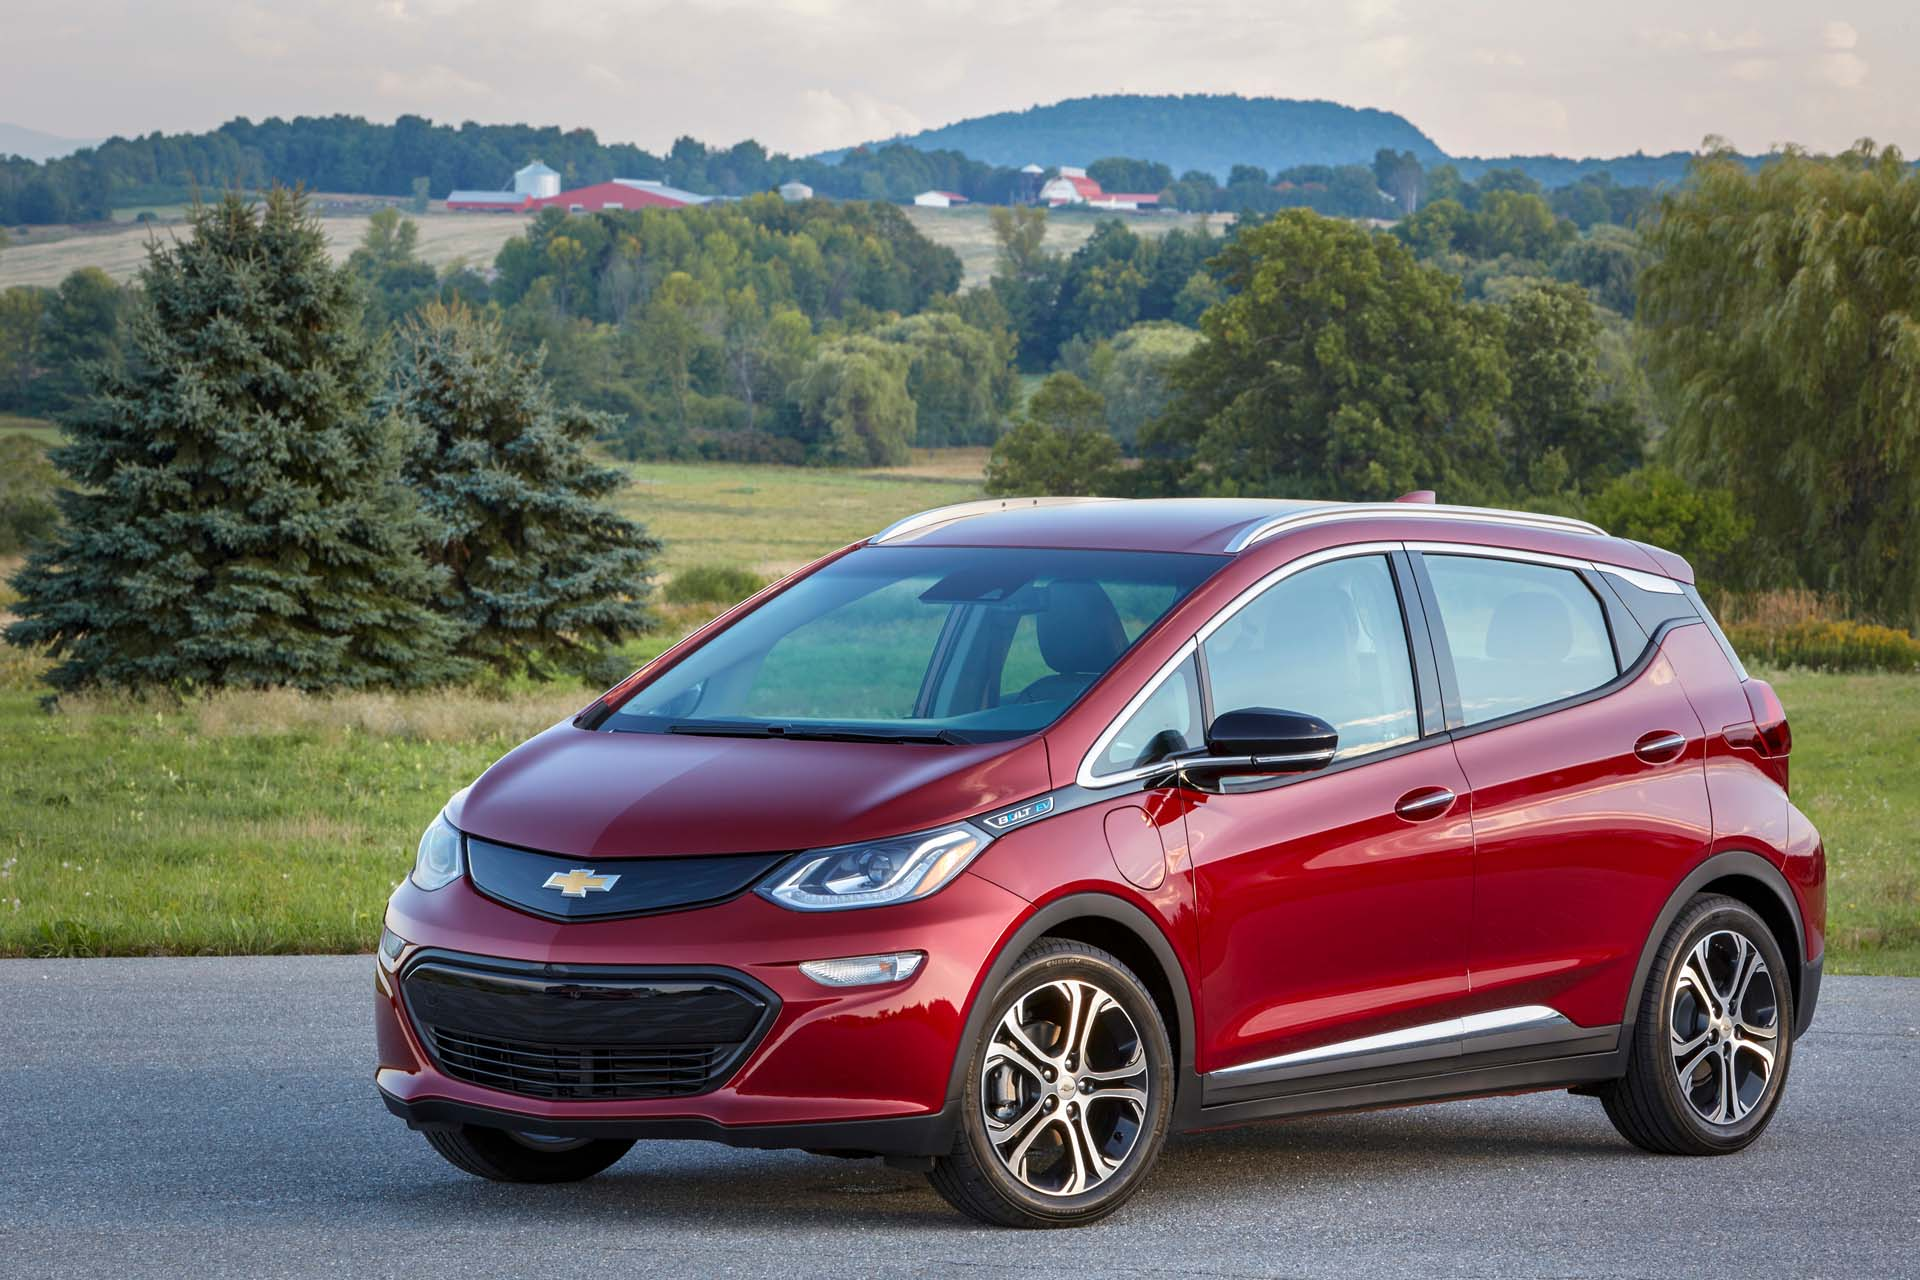 Best Electric Car Lease Deals 2020 Best deals on plug in, electric, and hybrid cars for June 2019